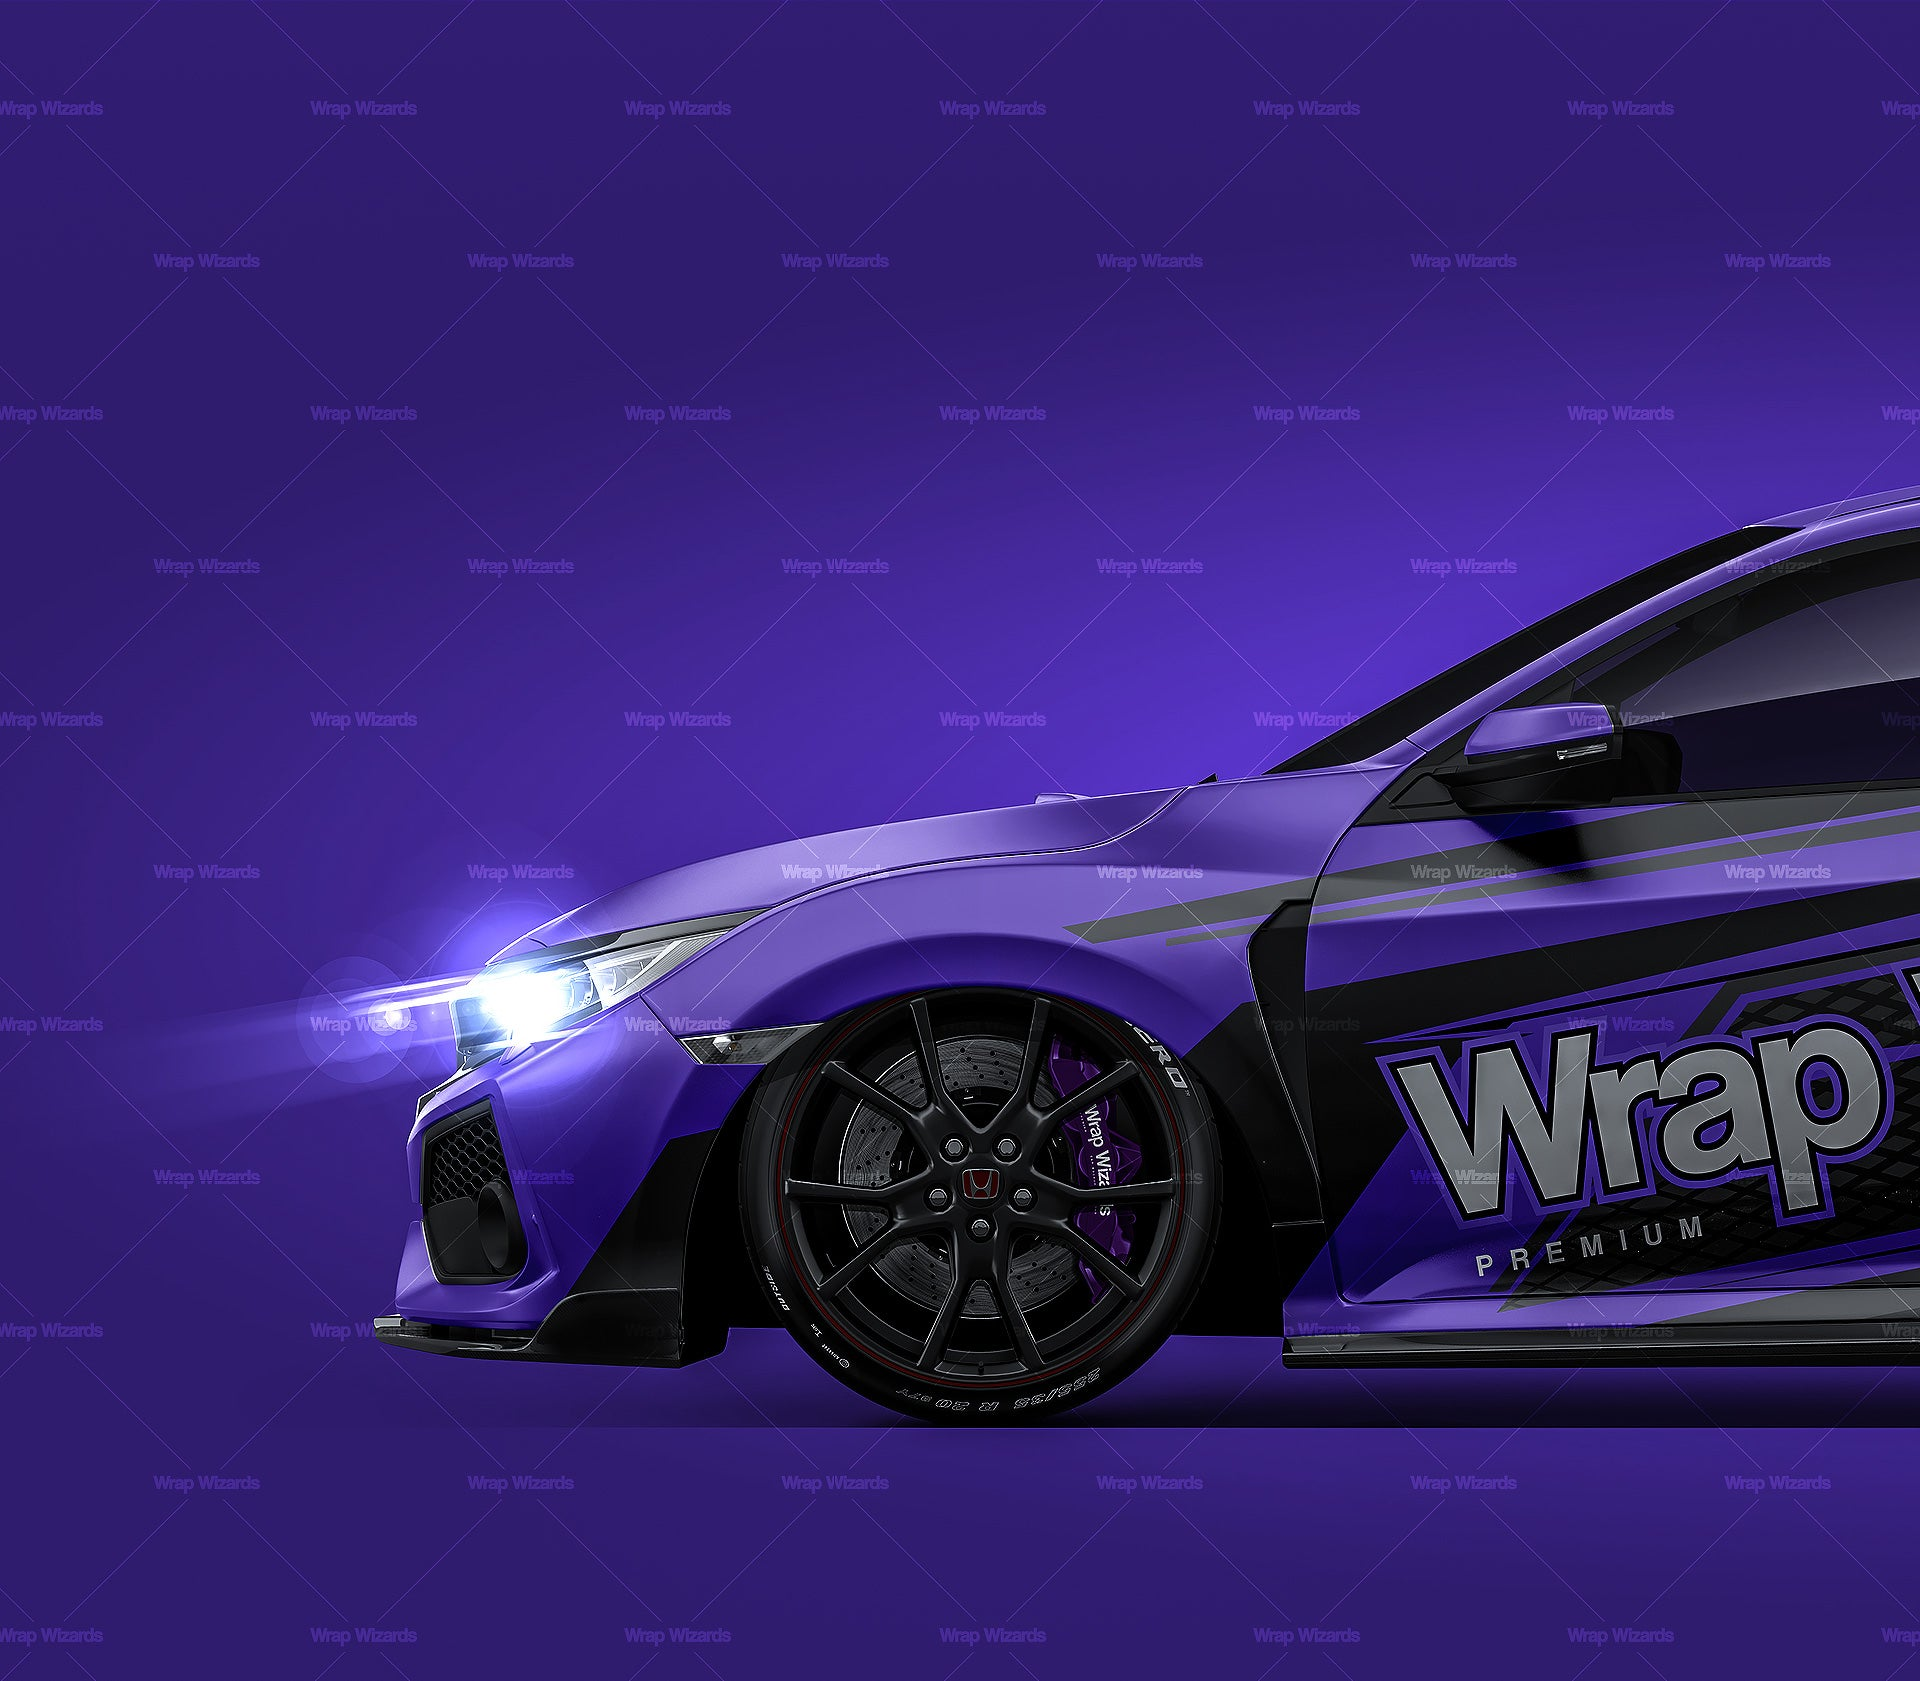 Honda Civic Type R 2018 satin matt finish - all sides Car Mockup Template.psd